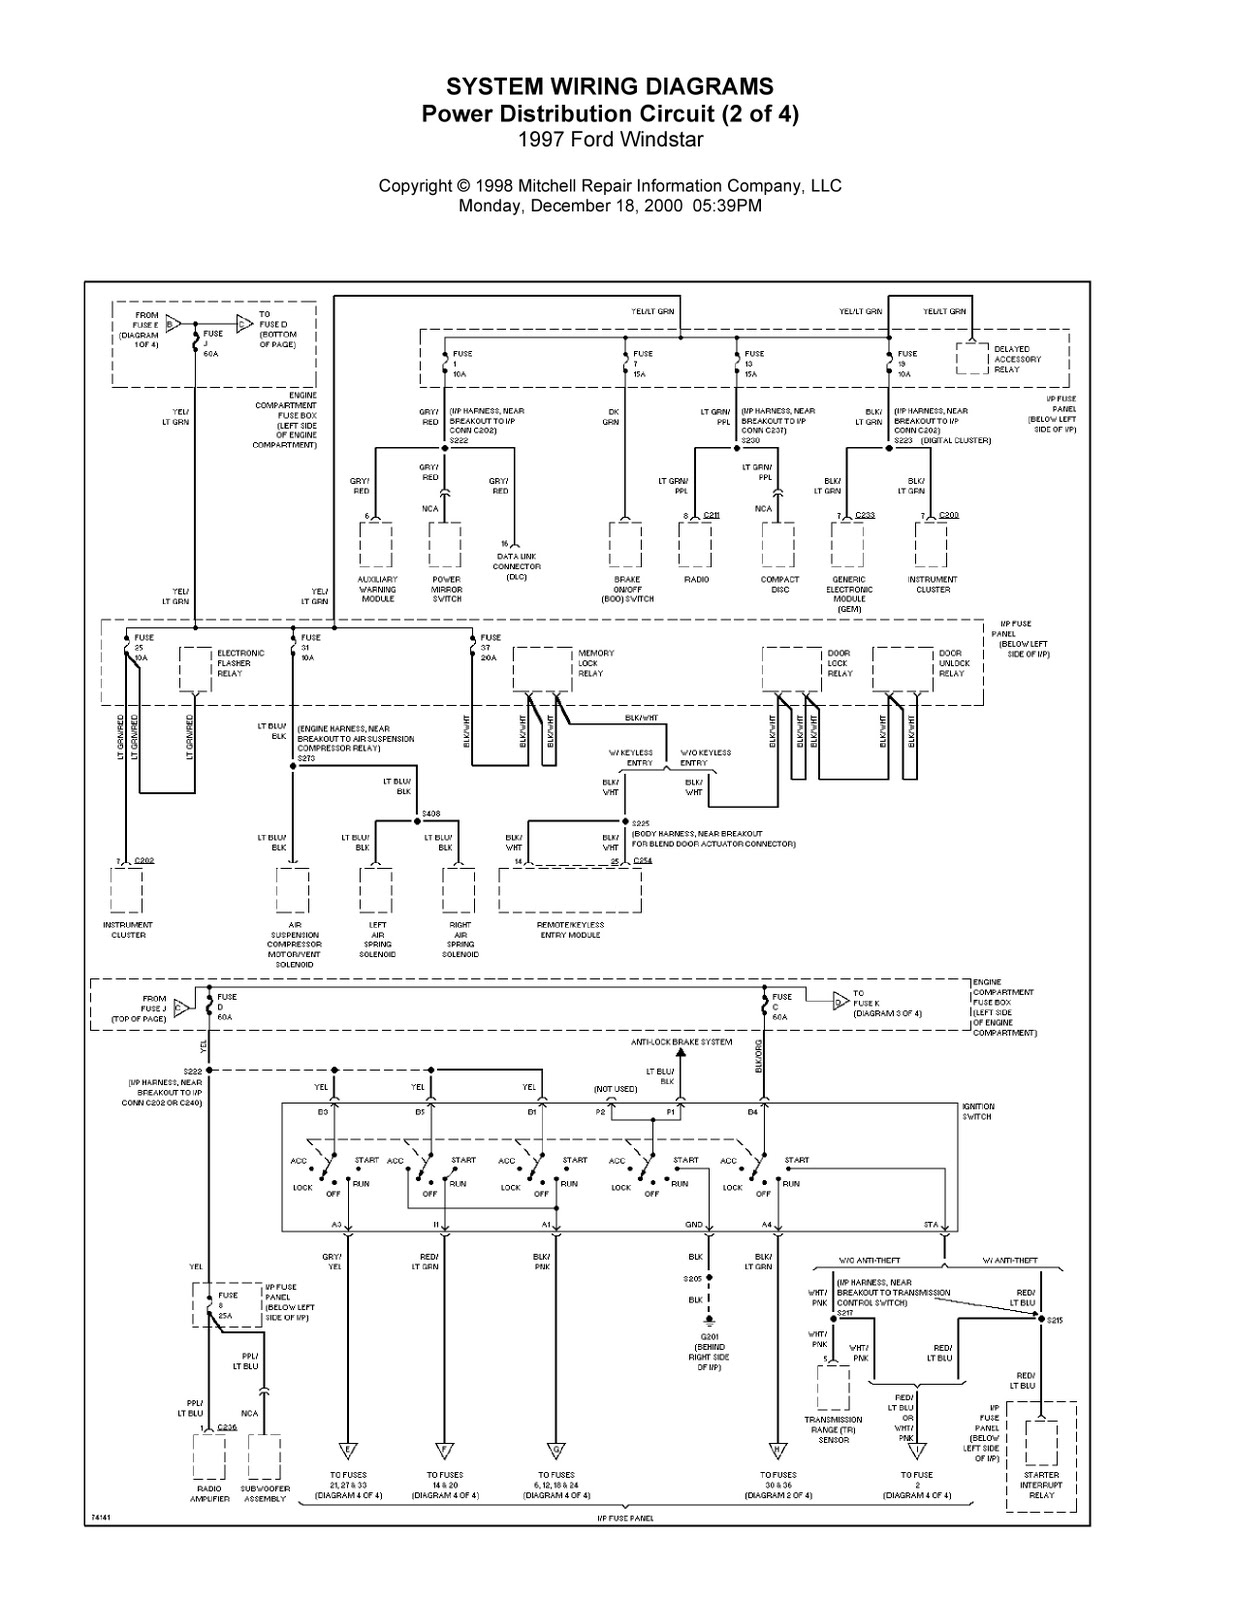 Ford Windstar Electrical Diagram Wiring Schematic 2019 2001 1997 Complete System Diagrams